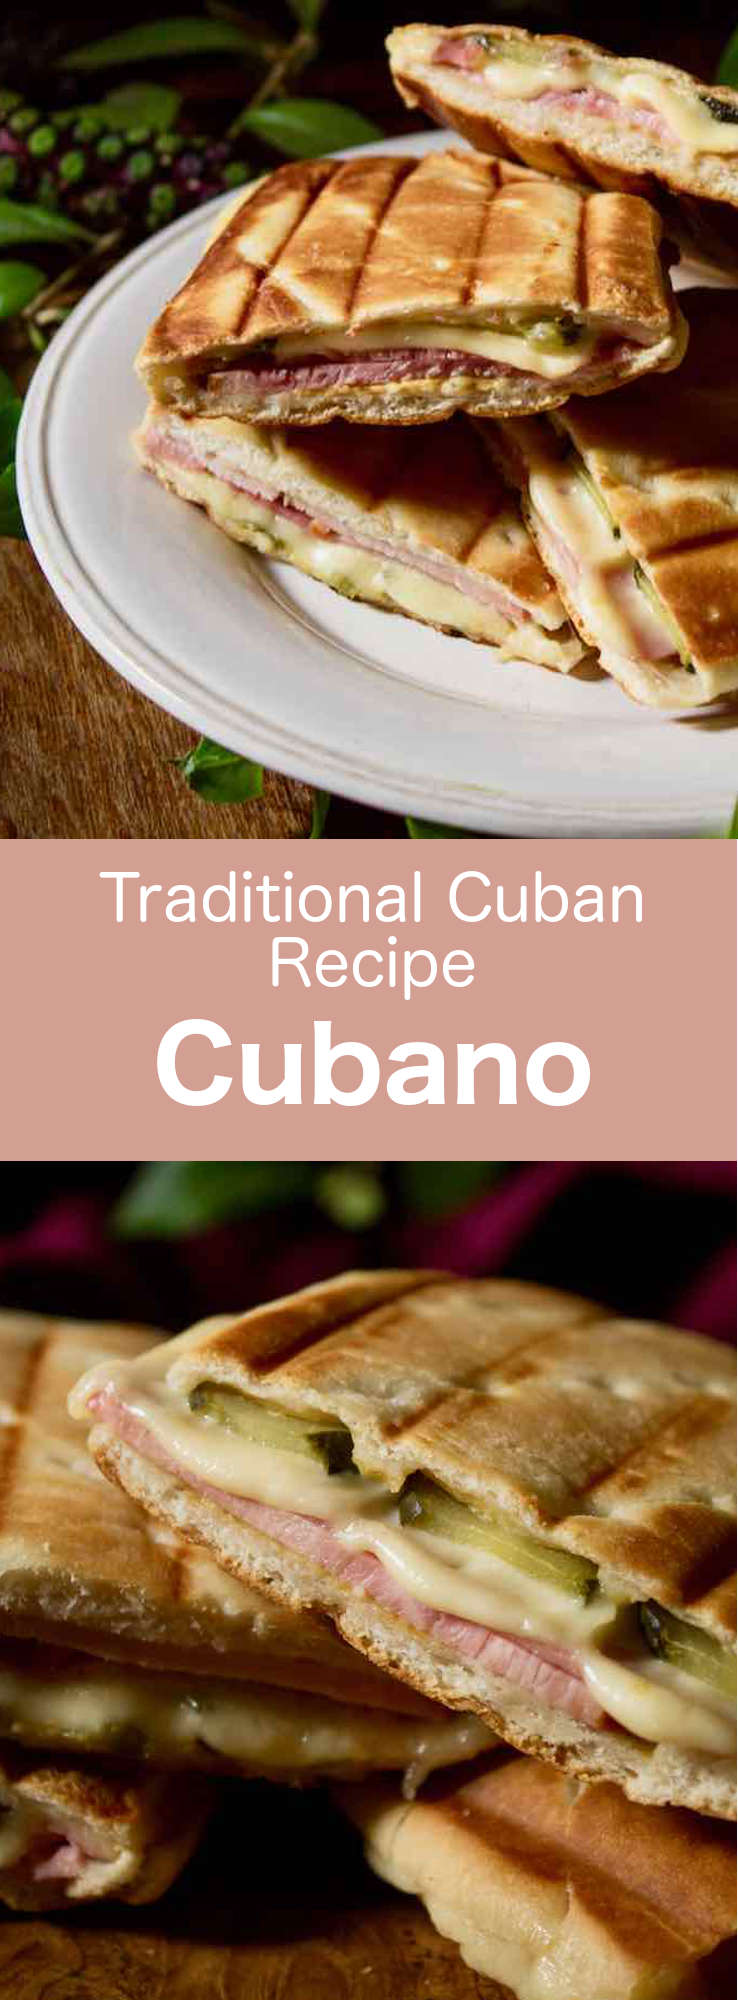 Cubano is a pressed sandwich with roast pork, ham, pickles and cheese, popularized by Cuban immigrants in Florida in the nineteenth century. #Cuba #CubanCuisine #CubanRecipe #CubanFood #Caribbean #CaribbeanCuisine #CaribbeanRecipe #CaribbeanFood #WorldCuisine #196flavors